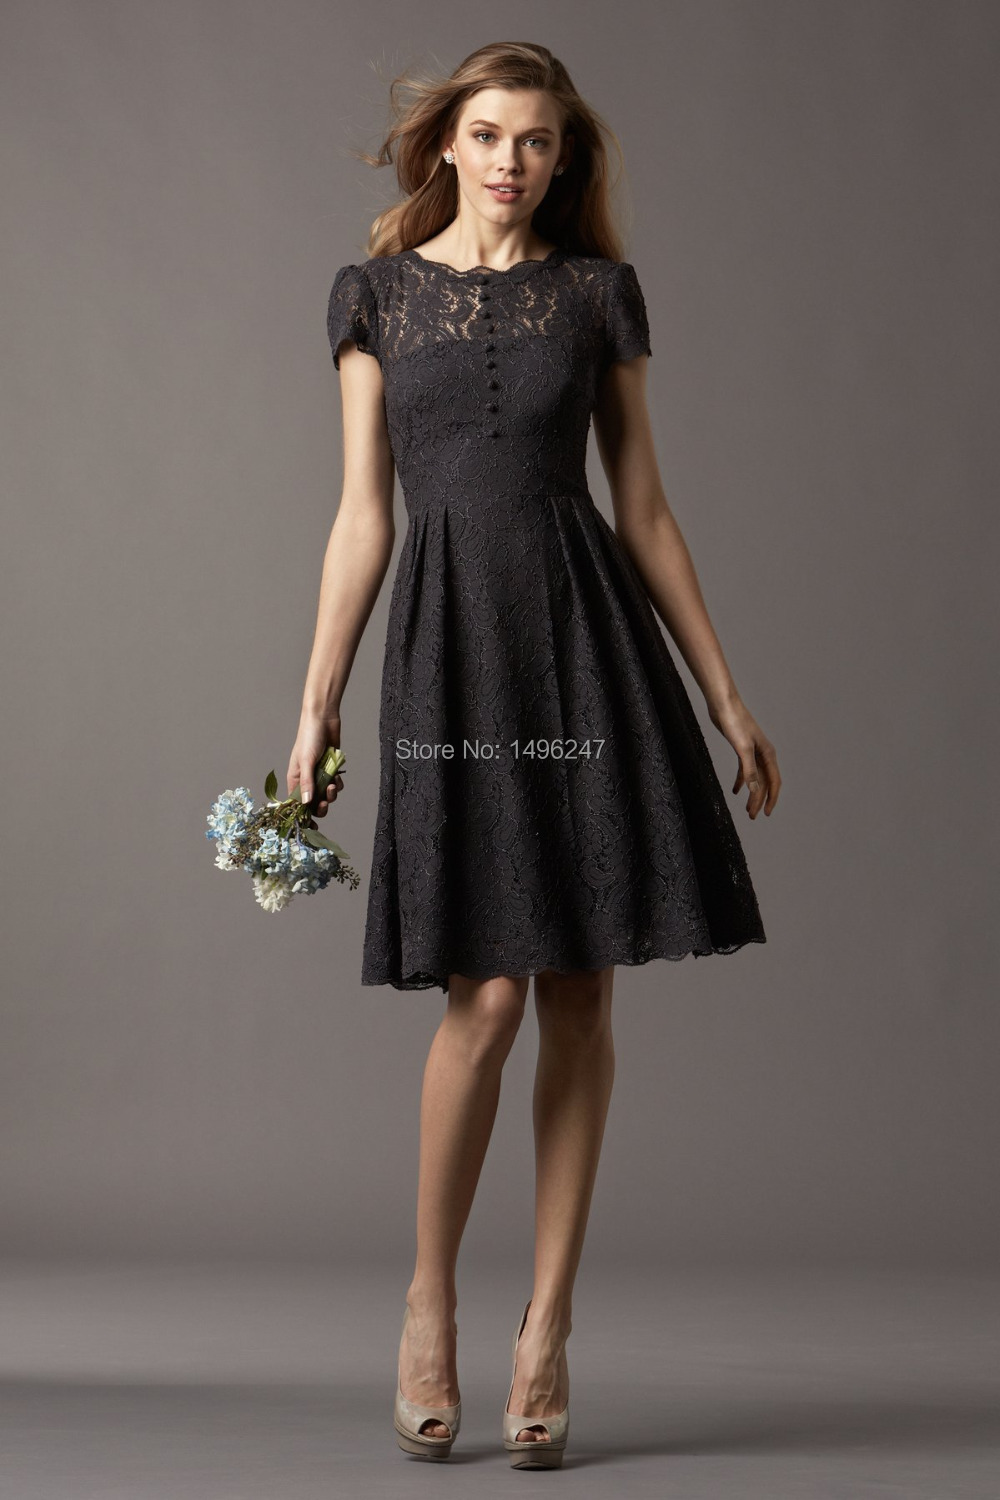 Best Short Black Lace Bridesmaid Dresses With Sleeve Open Back A Line Women Party Dress For Fast Shipping In From